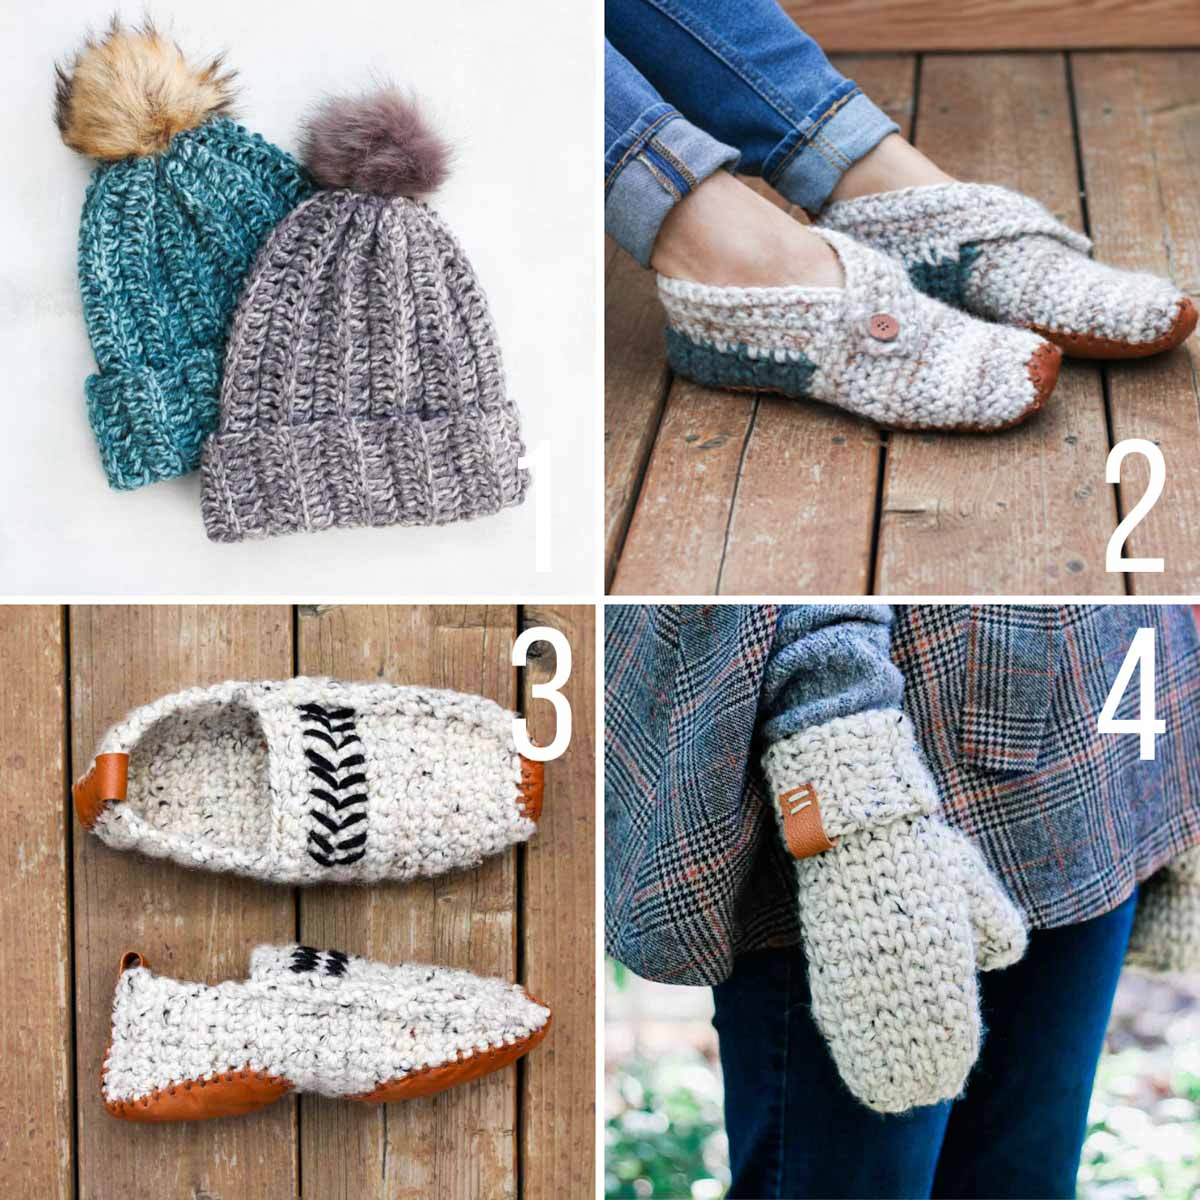 Four fast crochet projects including slippers for men, slippers for women, crochet mittens and a easy crochet hat.